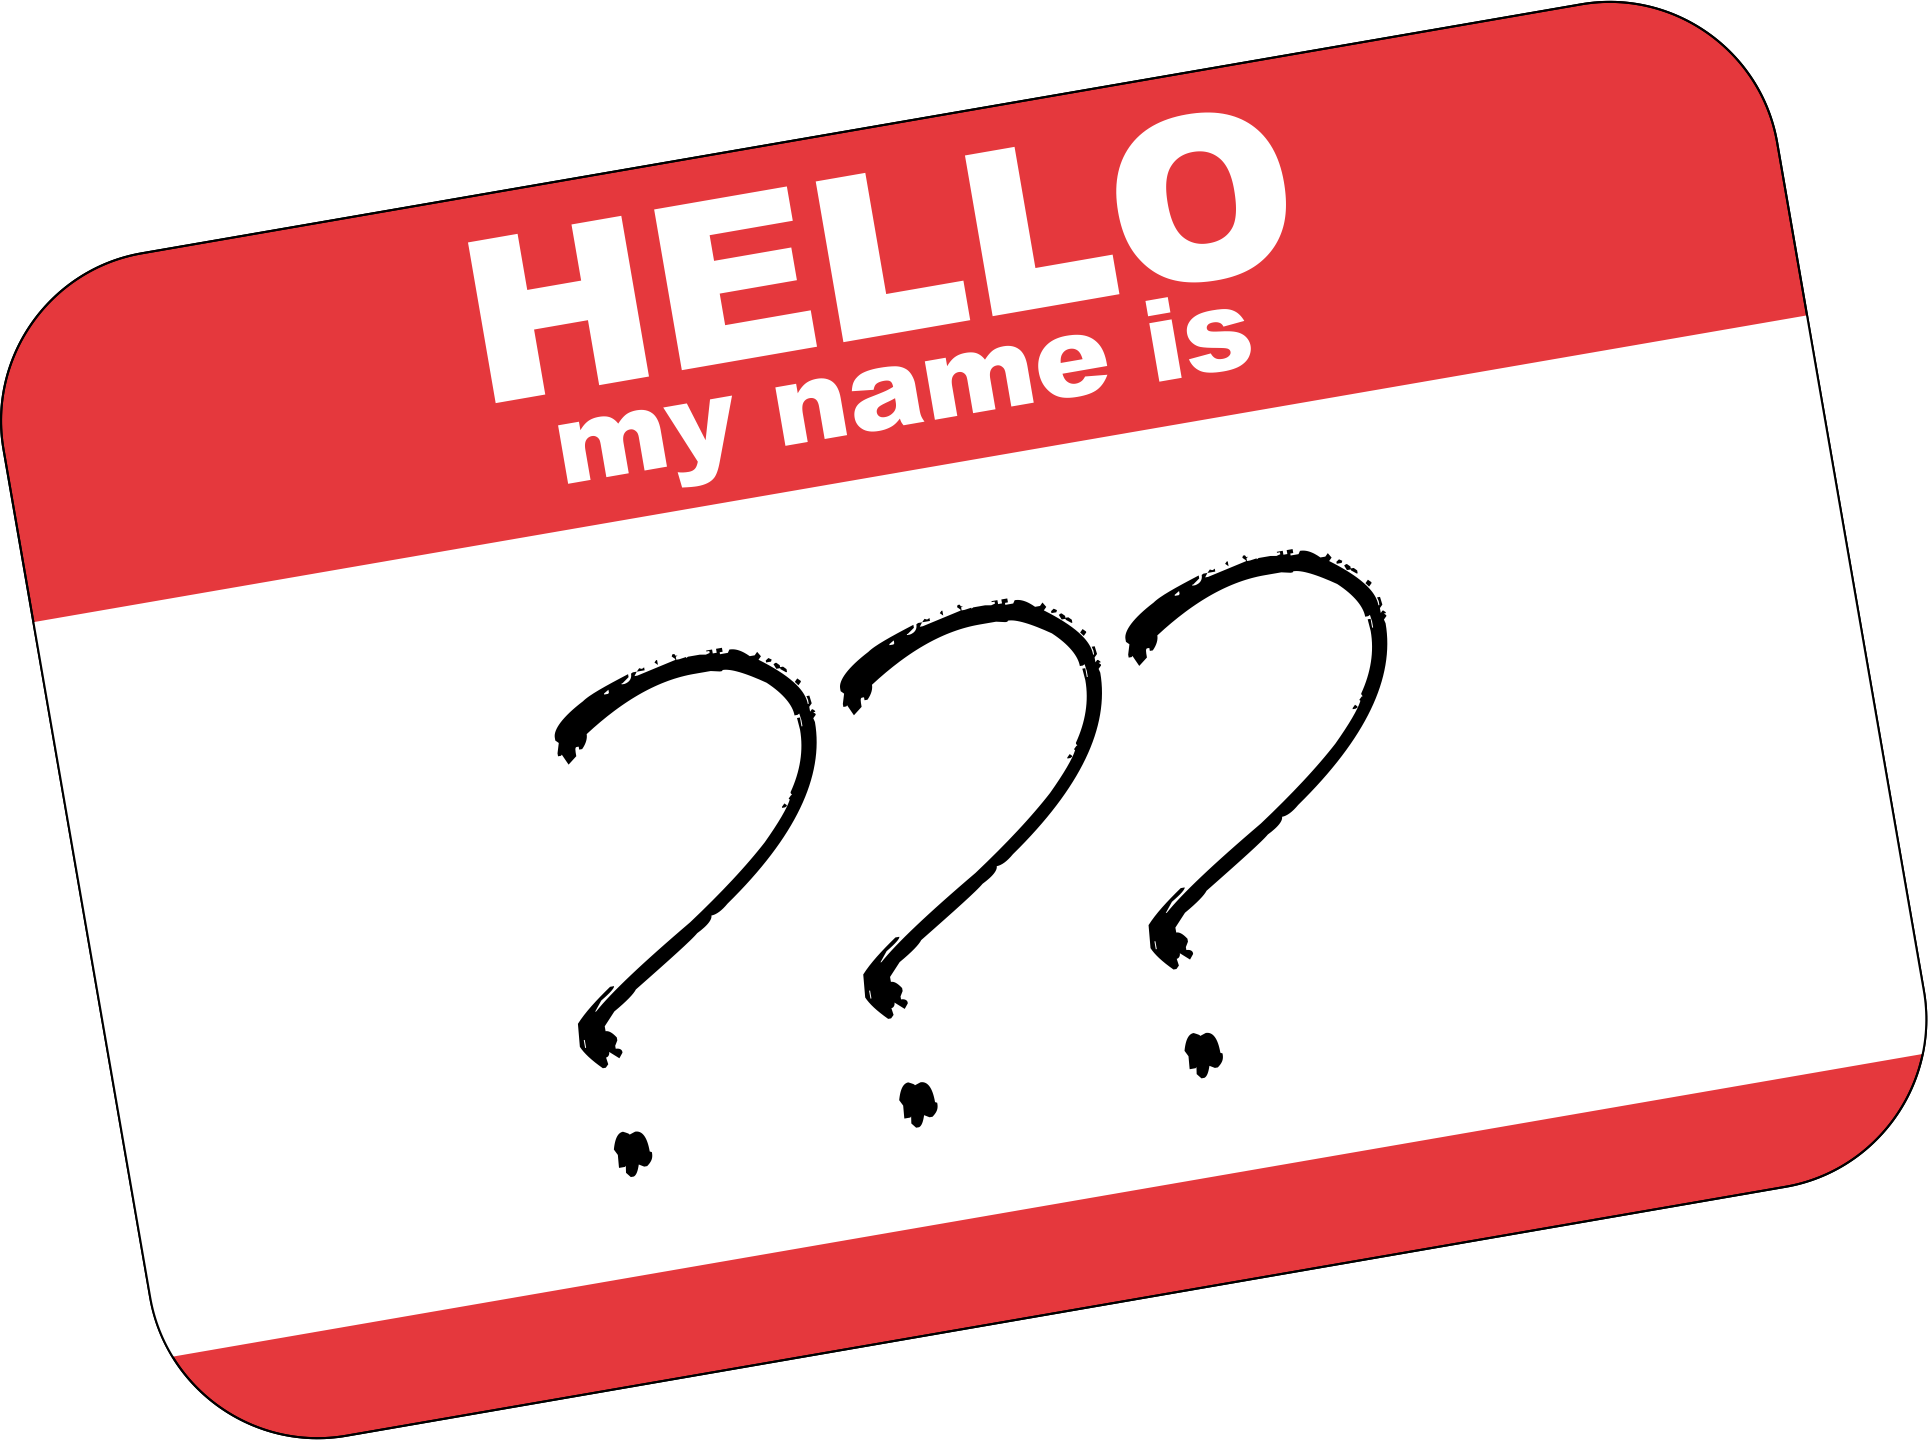 Name clipart name tag. Naming your clown character